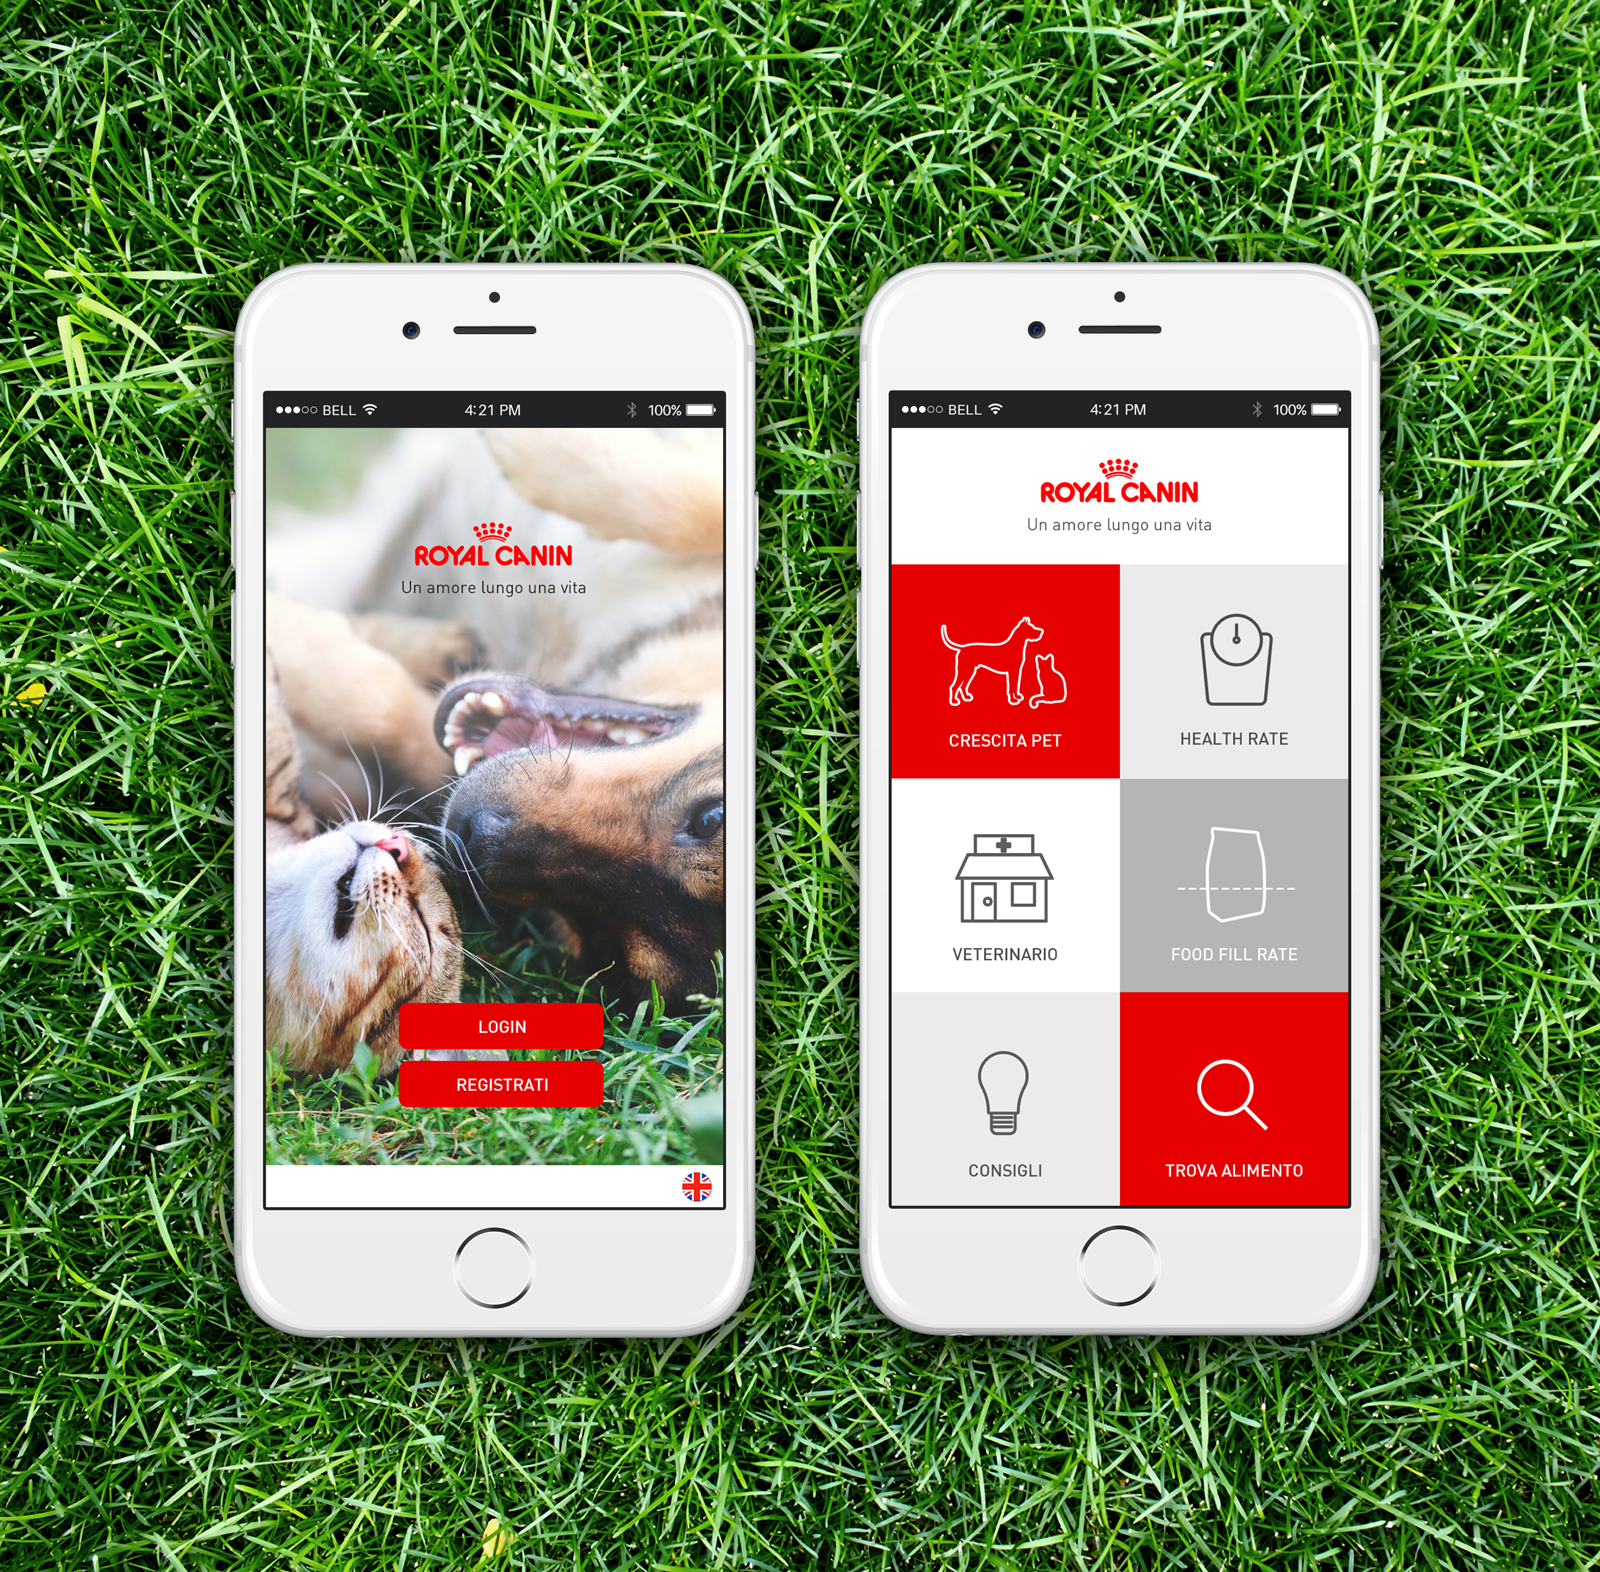 Royal-Canin-[-App-Home-]